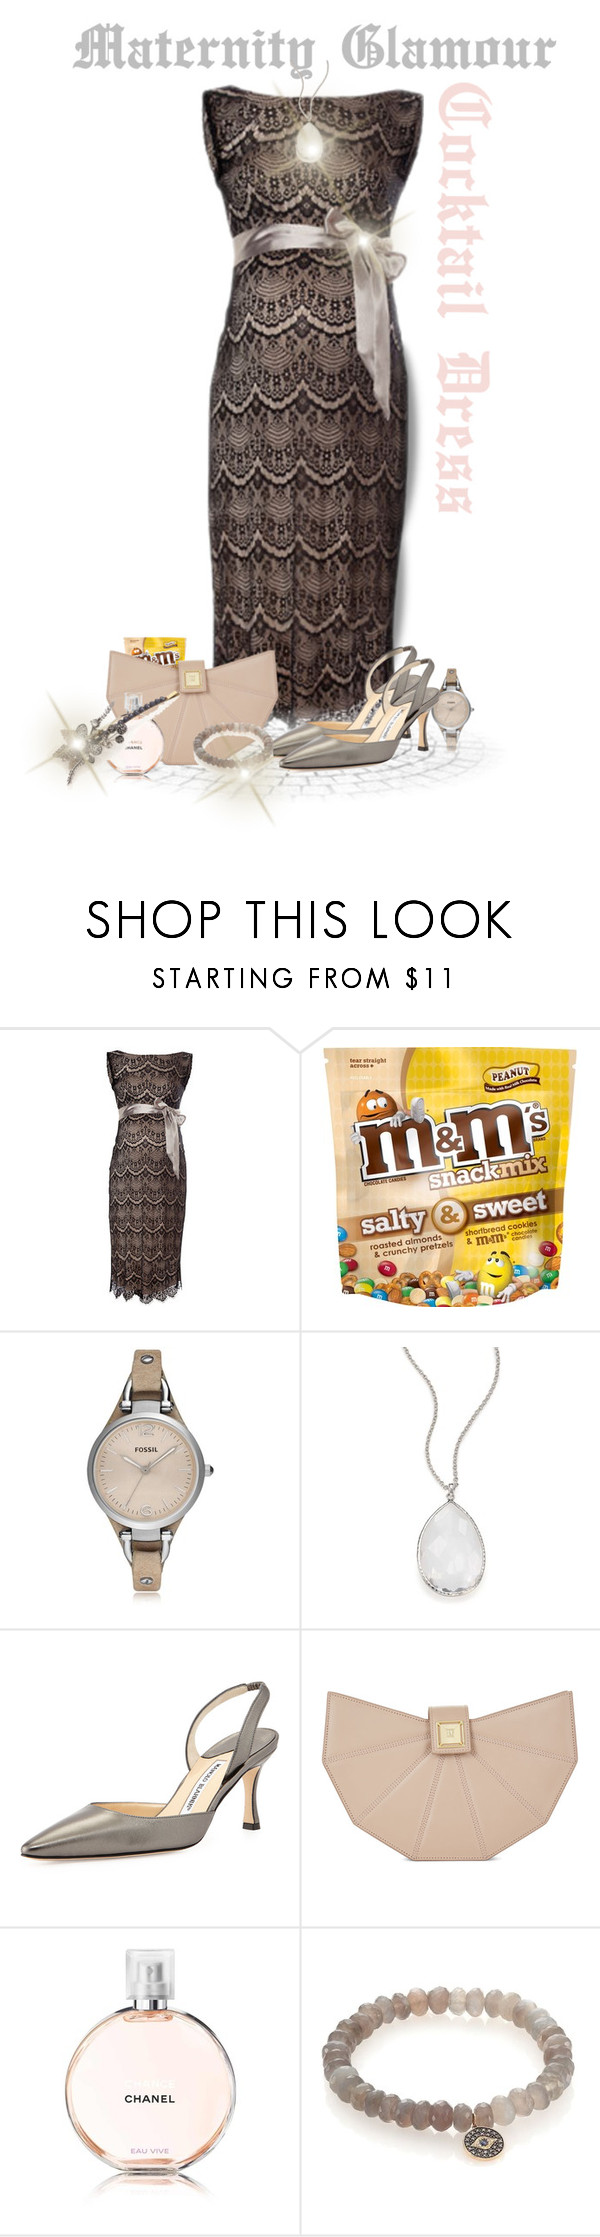 """Maternity Glamour - Cocktail Dress"" by sasane ❤ liked on Polyvore featuring FOSSIL, Ippolita, Manolo Blahnik, Hervé Léger, Sydney Evan and Jane Tran"